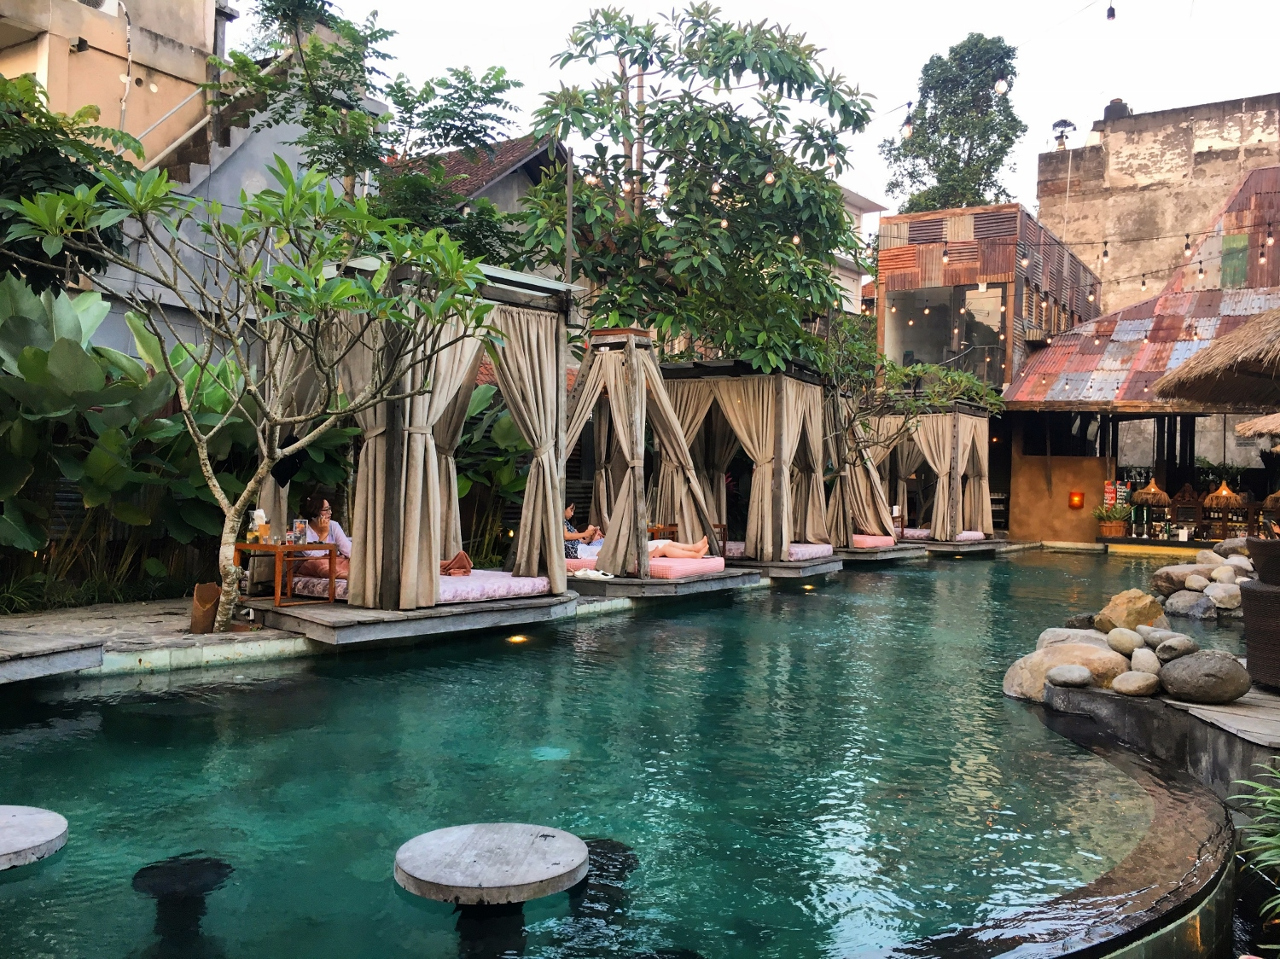 Folk Pool & Gardens, Ubud, Bali. Read this Ubud itinerary and see what to do on a short trip to Ubud. #ubuditinerary #ubudguide #baliindonesia #balitravel #bali #baliholiday #balinese #ubud